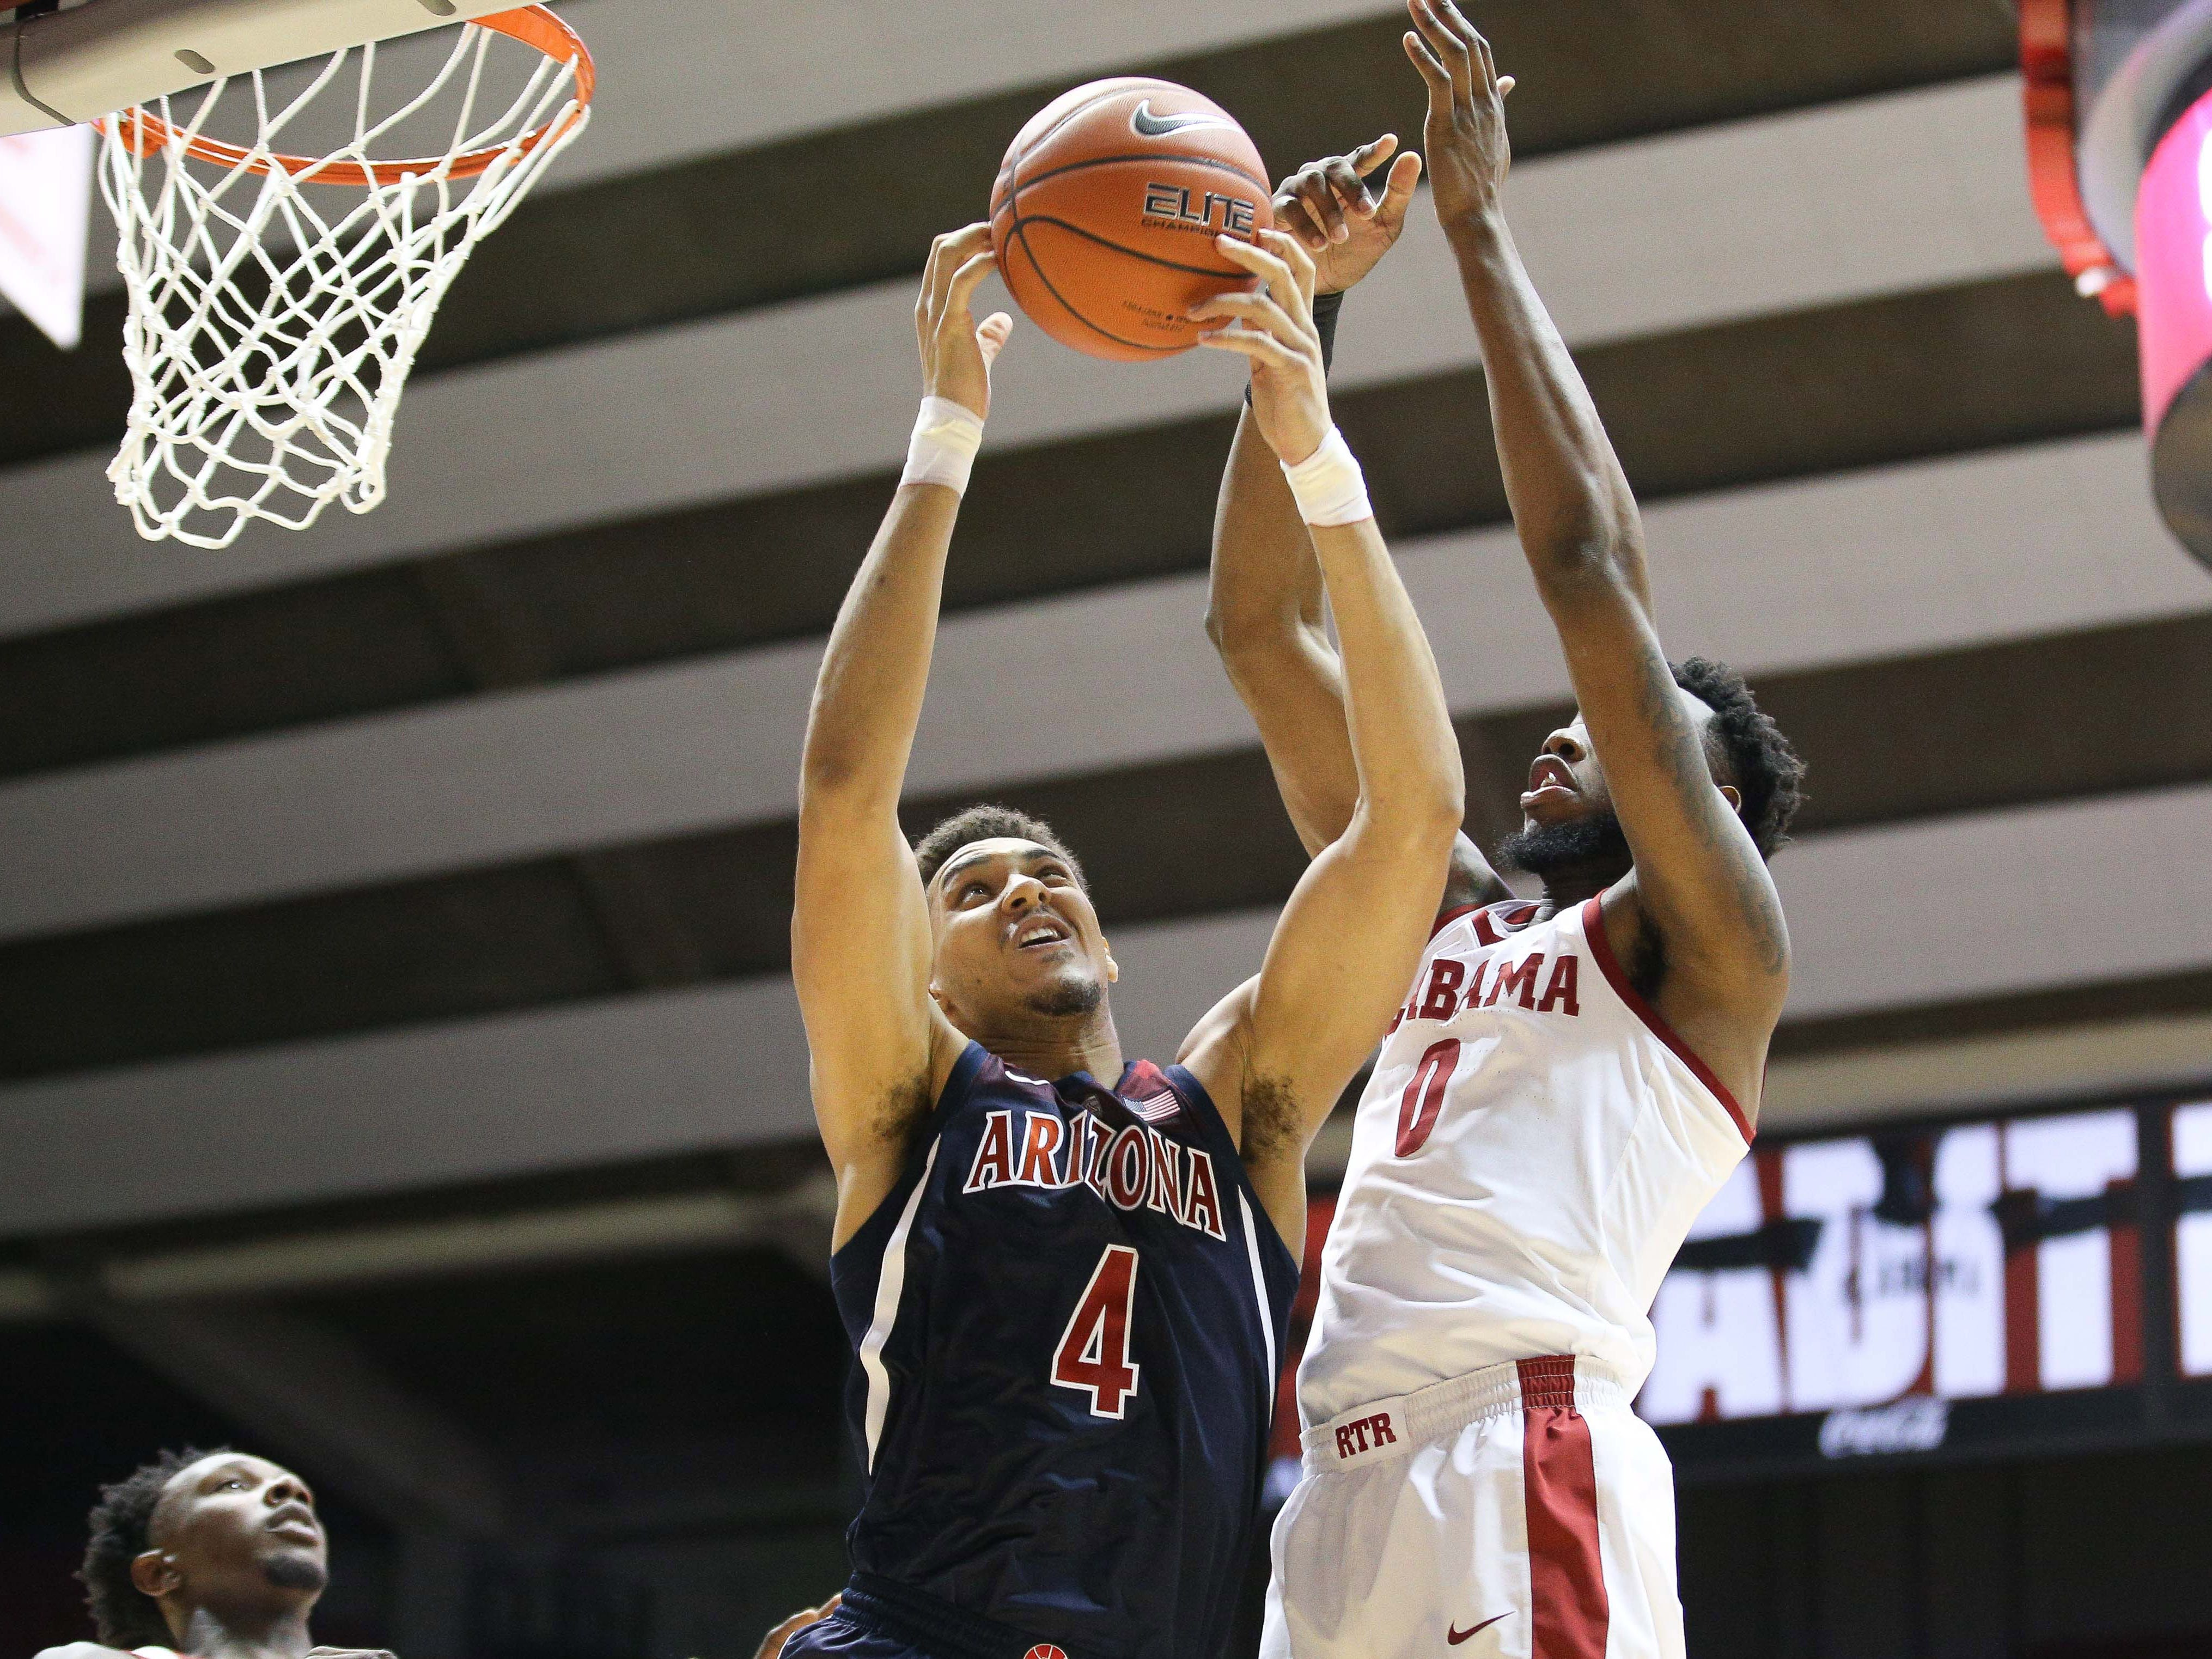 Dec 9, 2018; Tuscaloosa, AL, USA; Arizona Wildcats center Chase Jeter (4) grabs a rebound from Alabama Crimson Tide forward Donta Hall (0) during the first half at Coleman Coliseum. Mandatory Credit: Marvin Gentry-USA TODAY Sports